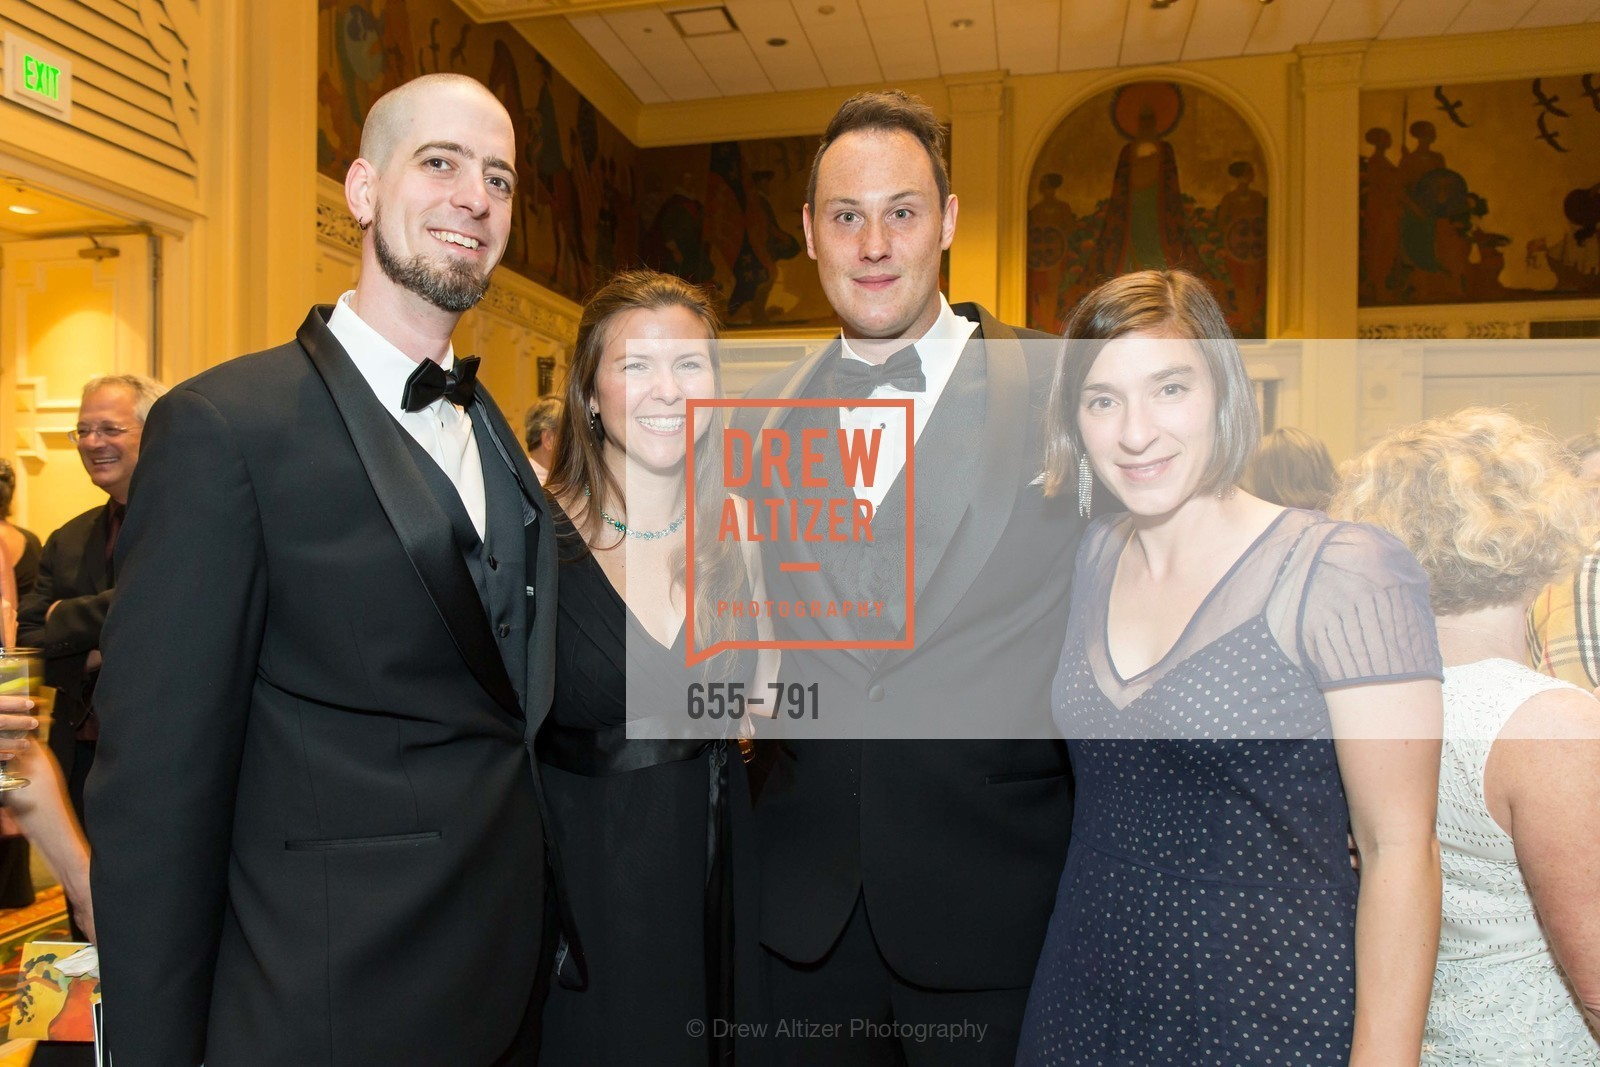 Kane Ehrler, Nicola Young, Paul Littler, Phoebe Schenker, SAN FRANCISCO HERITAGE Soiree 2015, US, April 19th, 2015,Drew Altizer, Drew Altizer Photography, full-service agency, private events, San Francisco photographer, photographer california